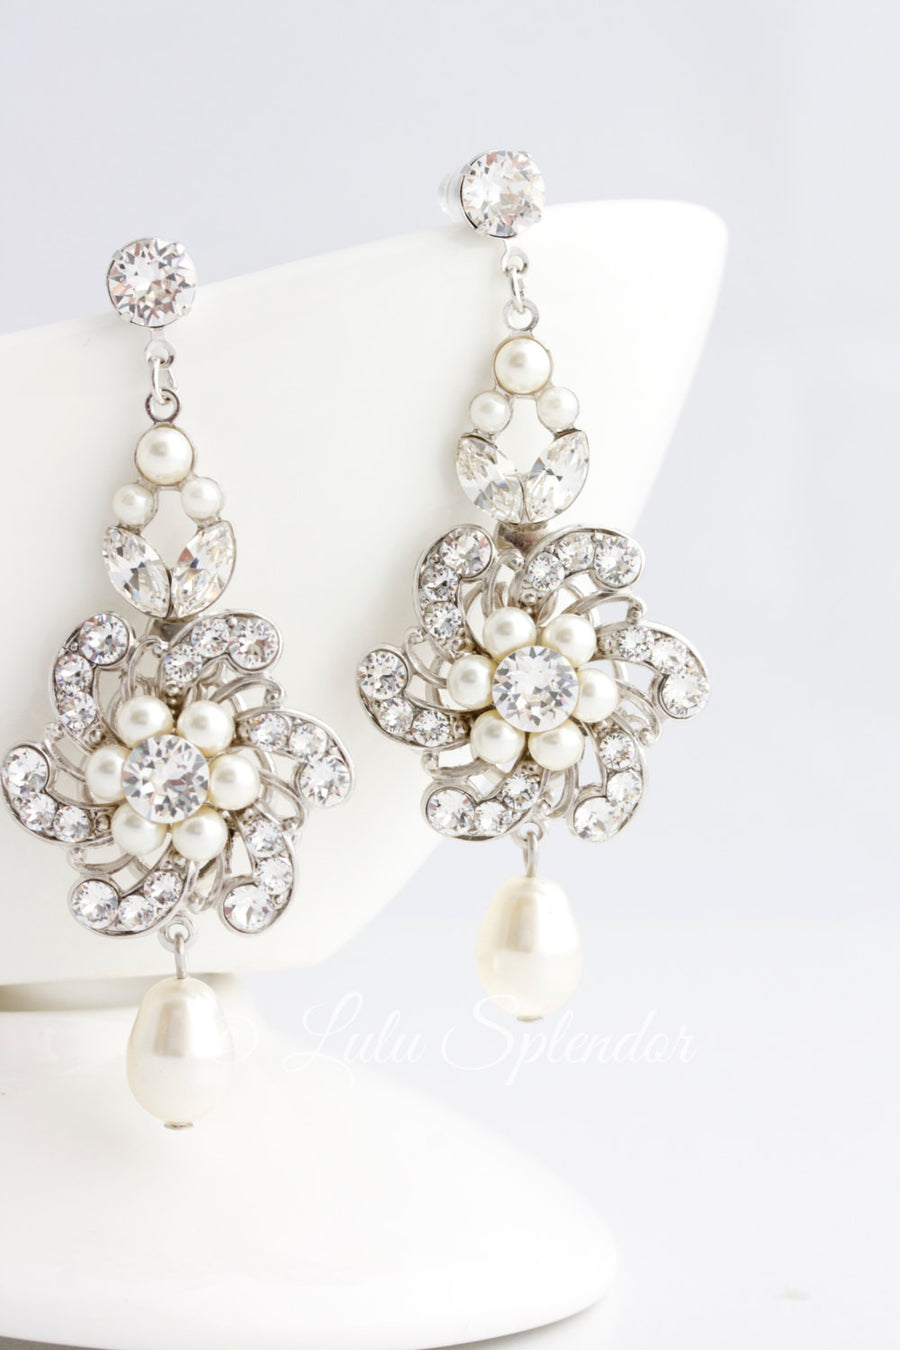 CLASSIC SABINE BRIDAL EARRINGS - Lulu Splendor